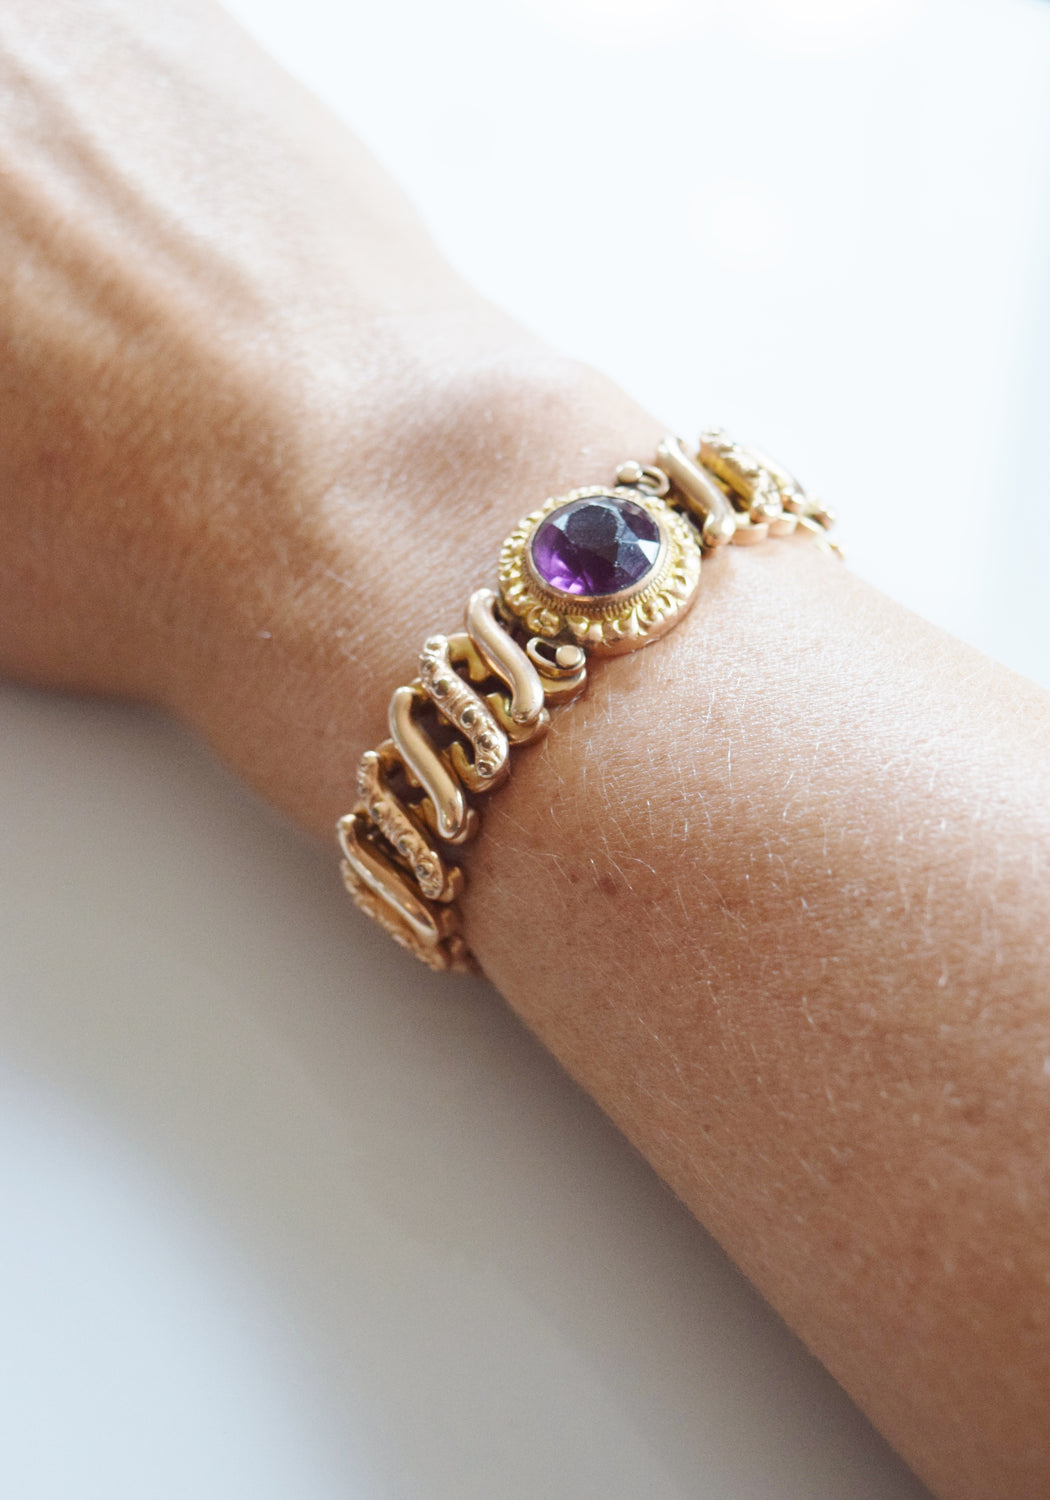 Victorian Revival Sweetheart Expansion Bracelet with Amethyst Stone | 1940s